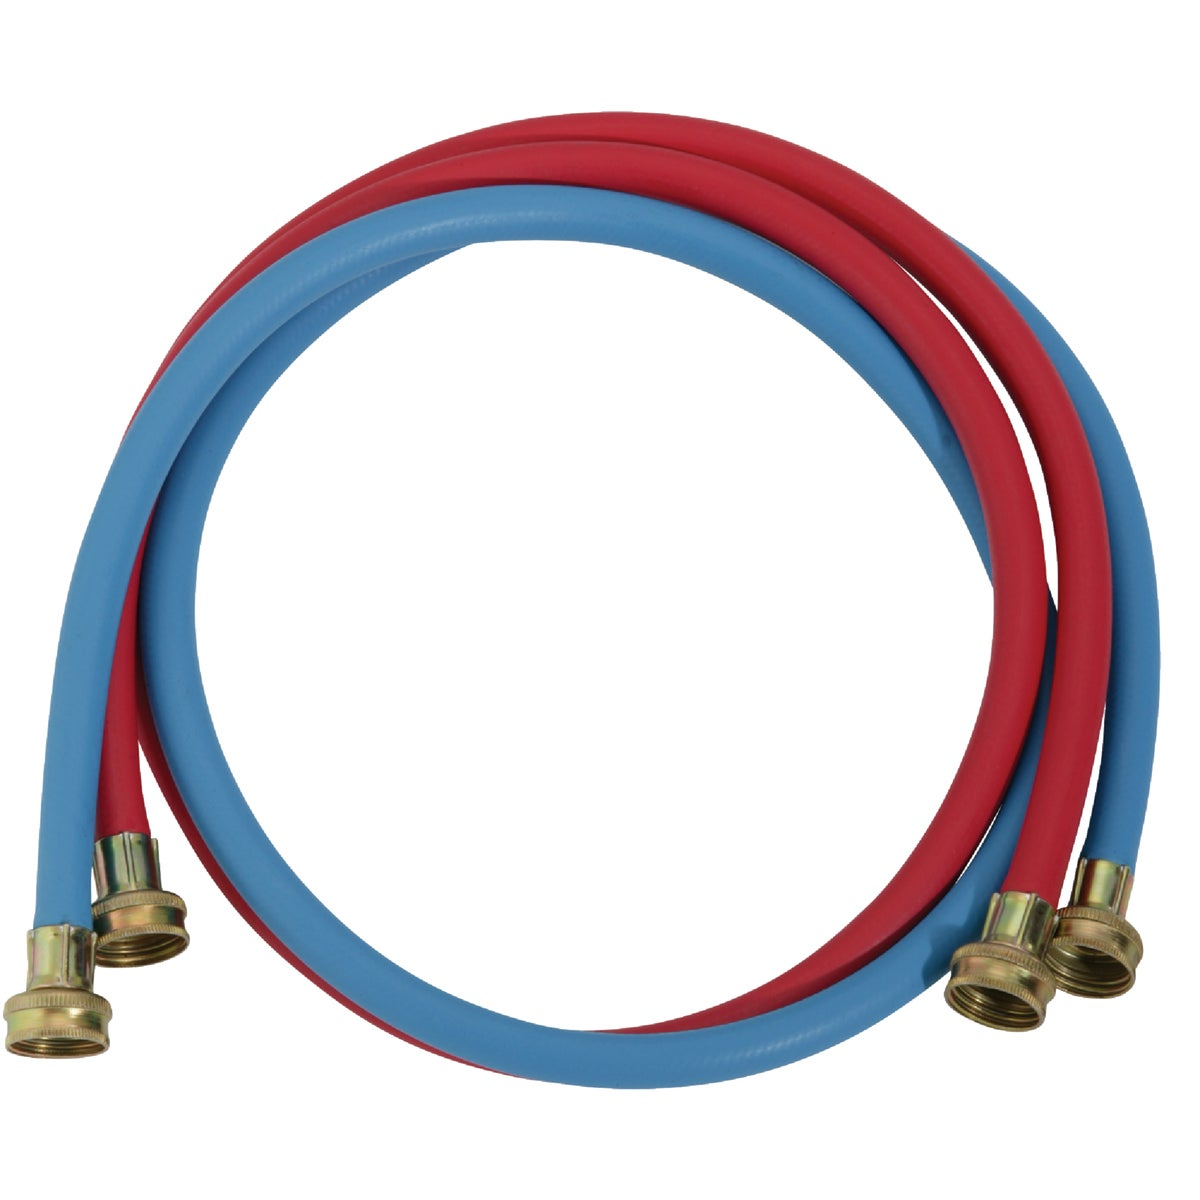 2PK 5' WASH MACHINE HOSE